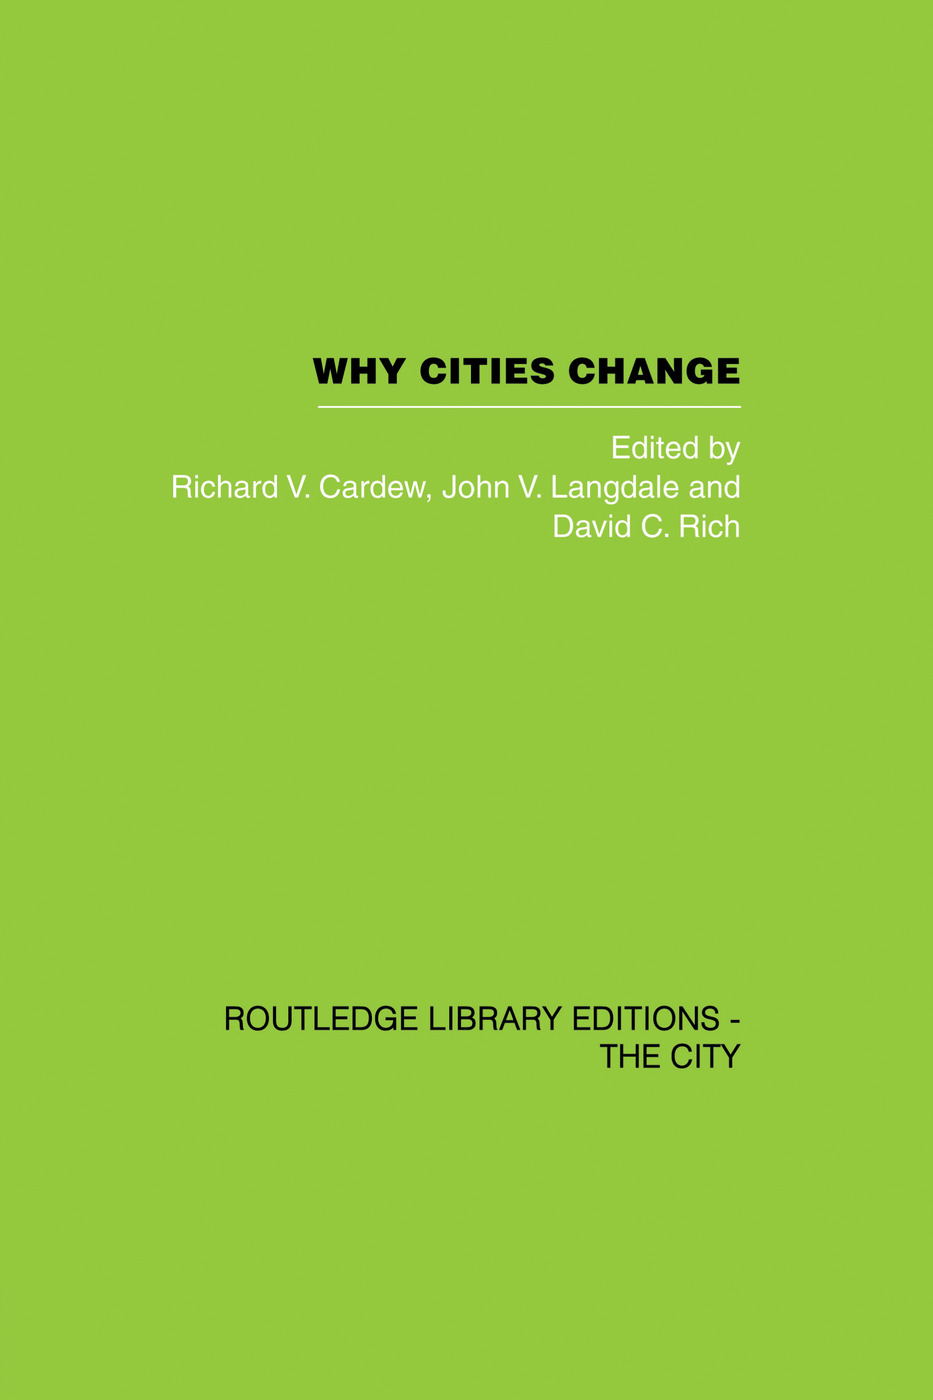 Why Cities Change